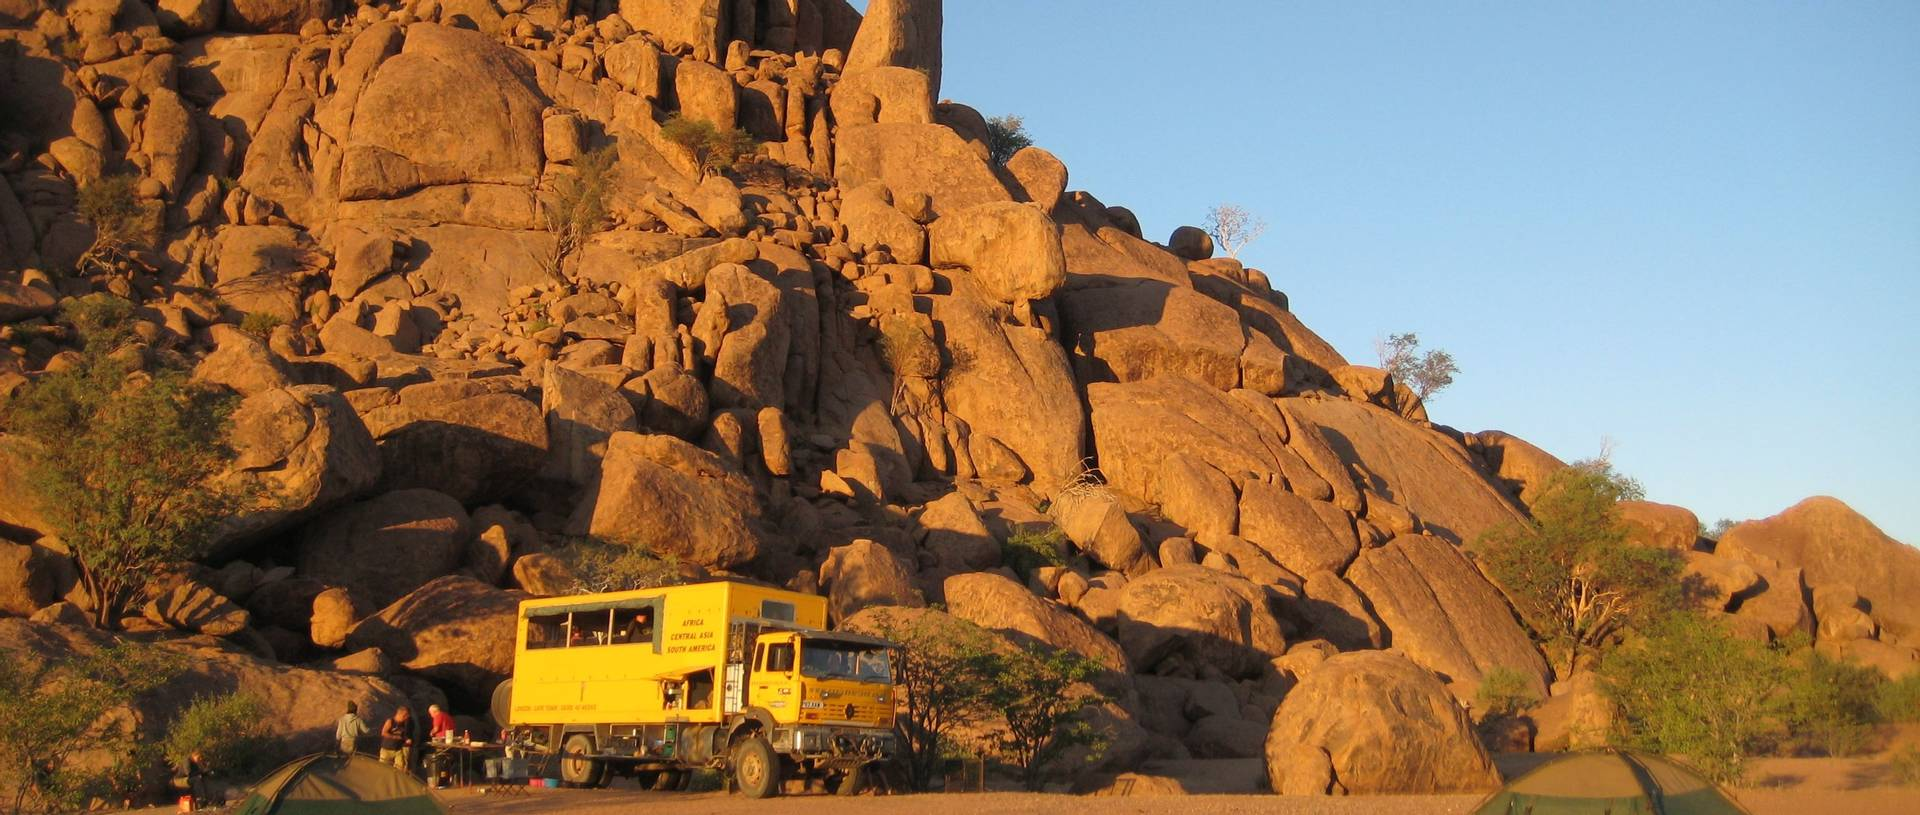 Camping At Spitzkoppe, Namibia